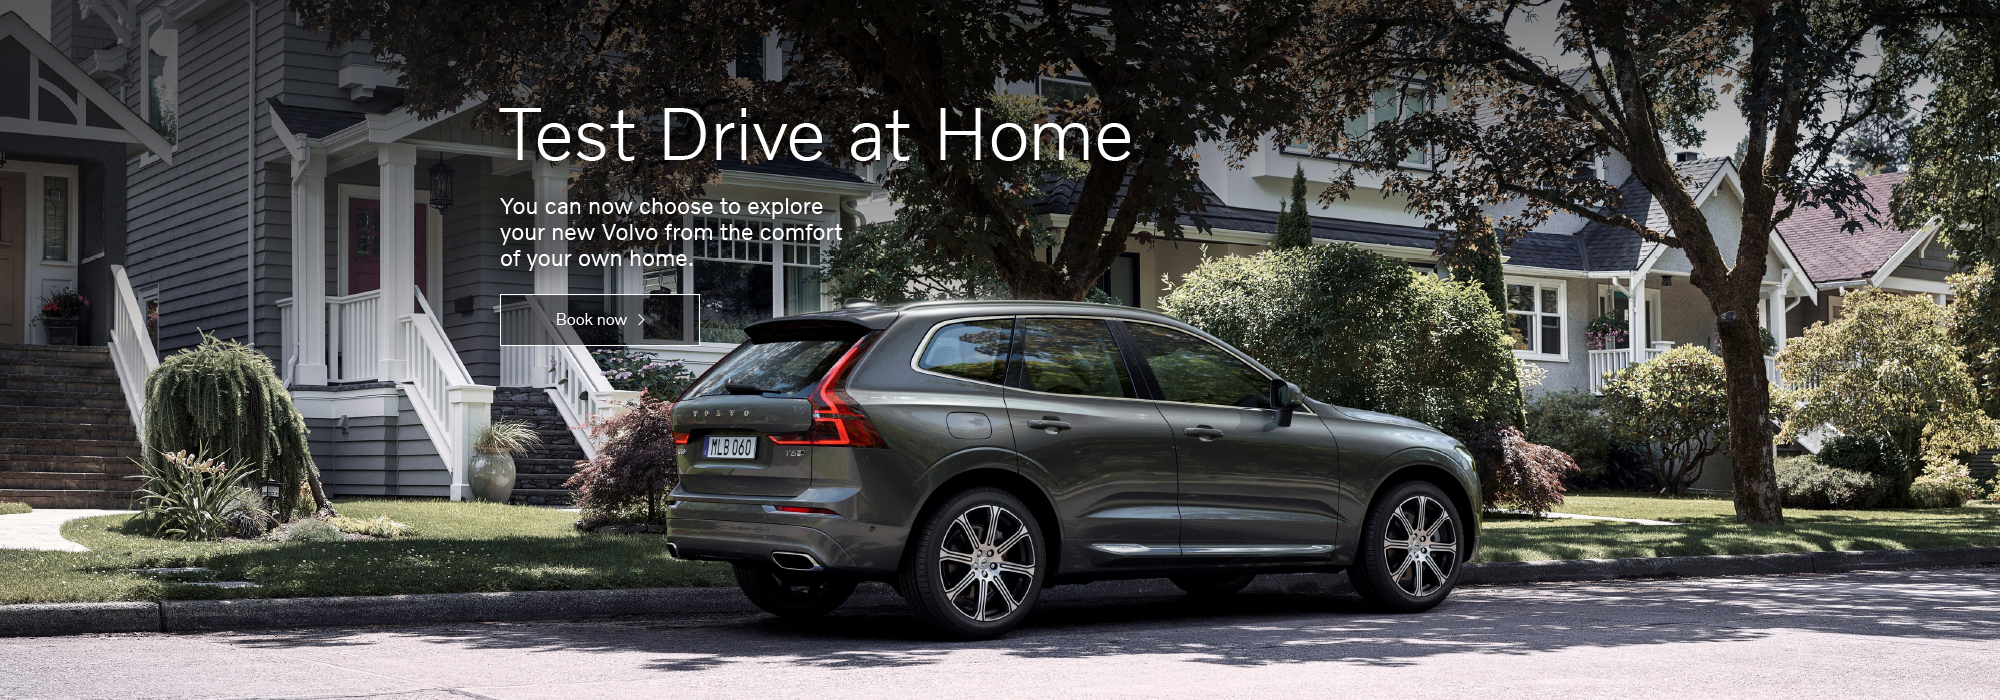 You can now choose to explore your new Volvo from the comfort of your own home.